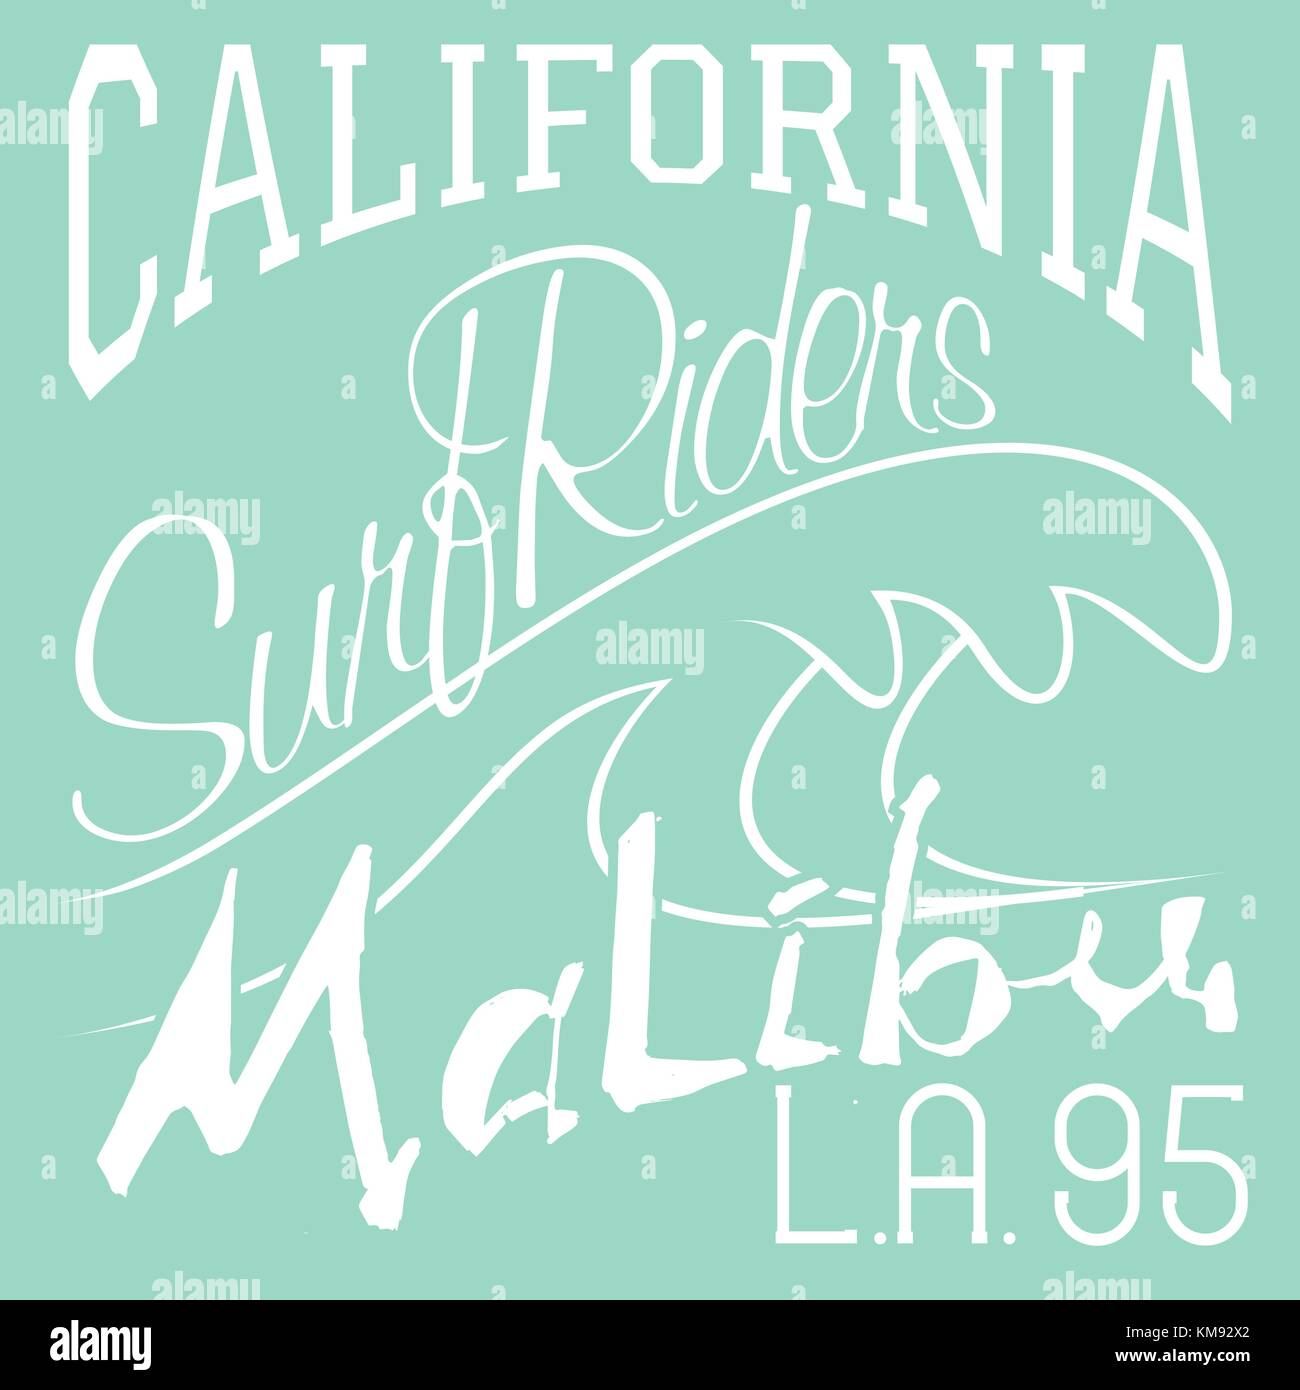 04f57f74 T-shirt Printing design, typography graphics Summer vector illustration  Badge Applique Label California Malibu beach surf riders L.A. sign.